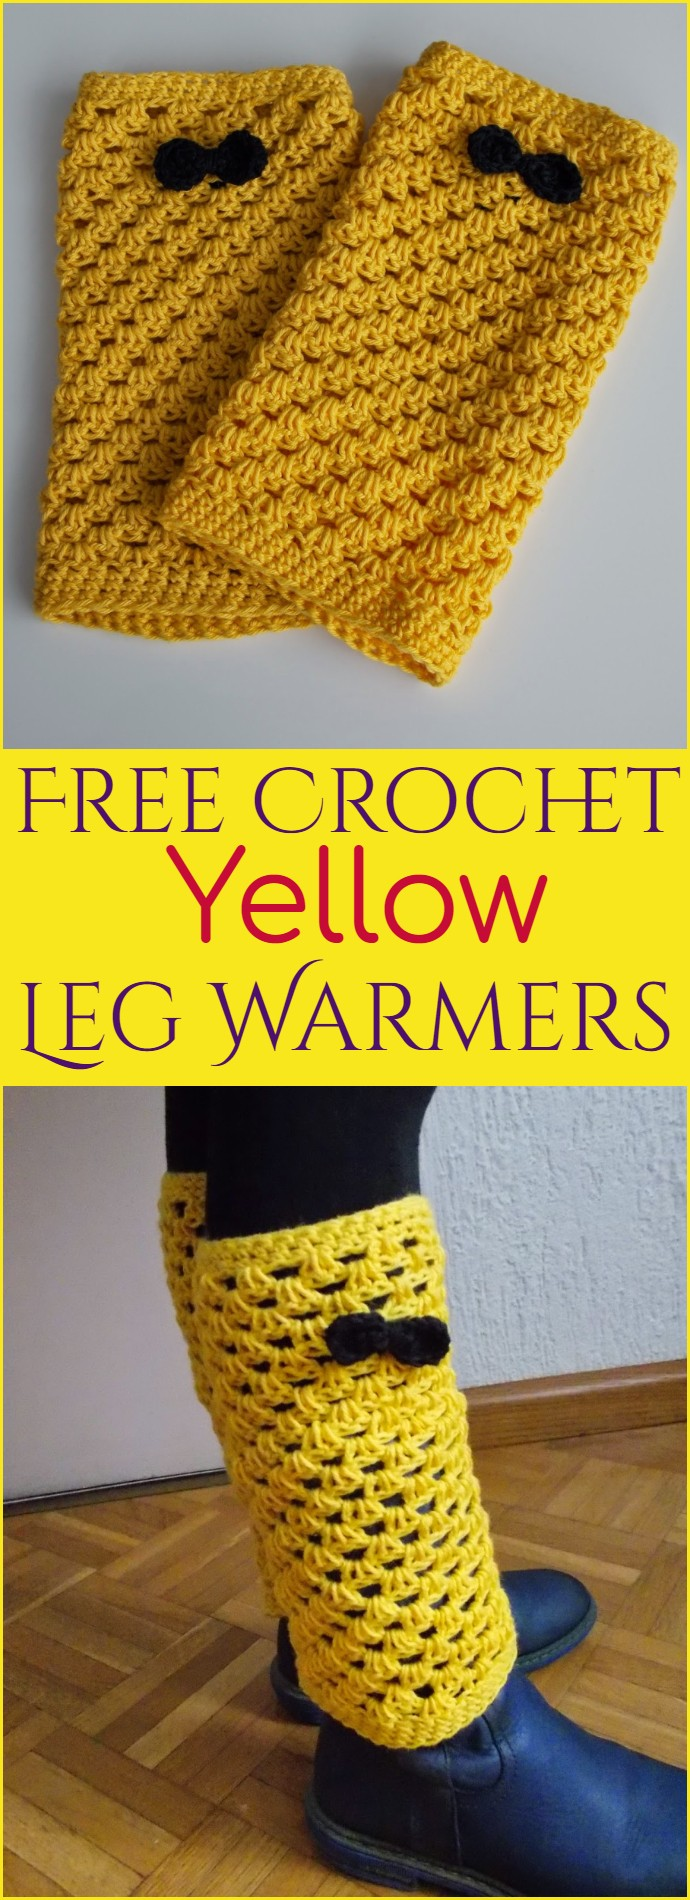 Free Crochet Yellow Leg Warmers